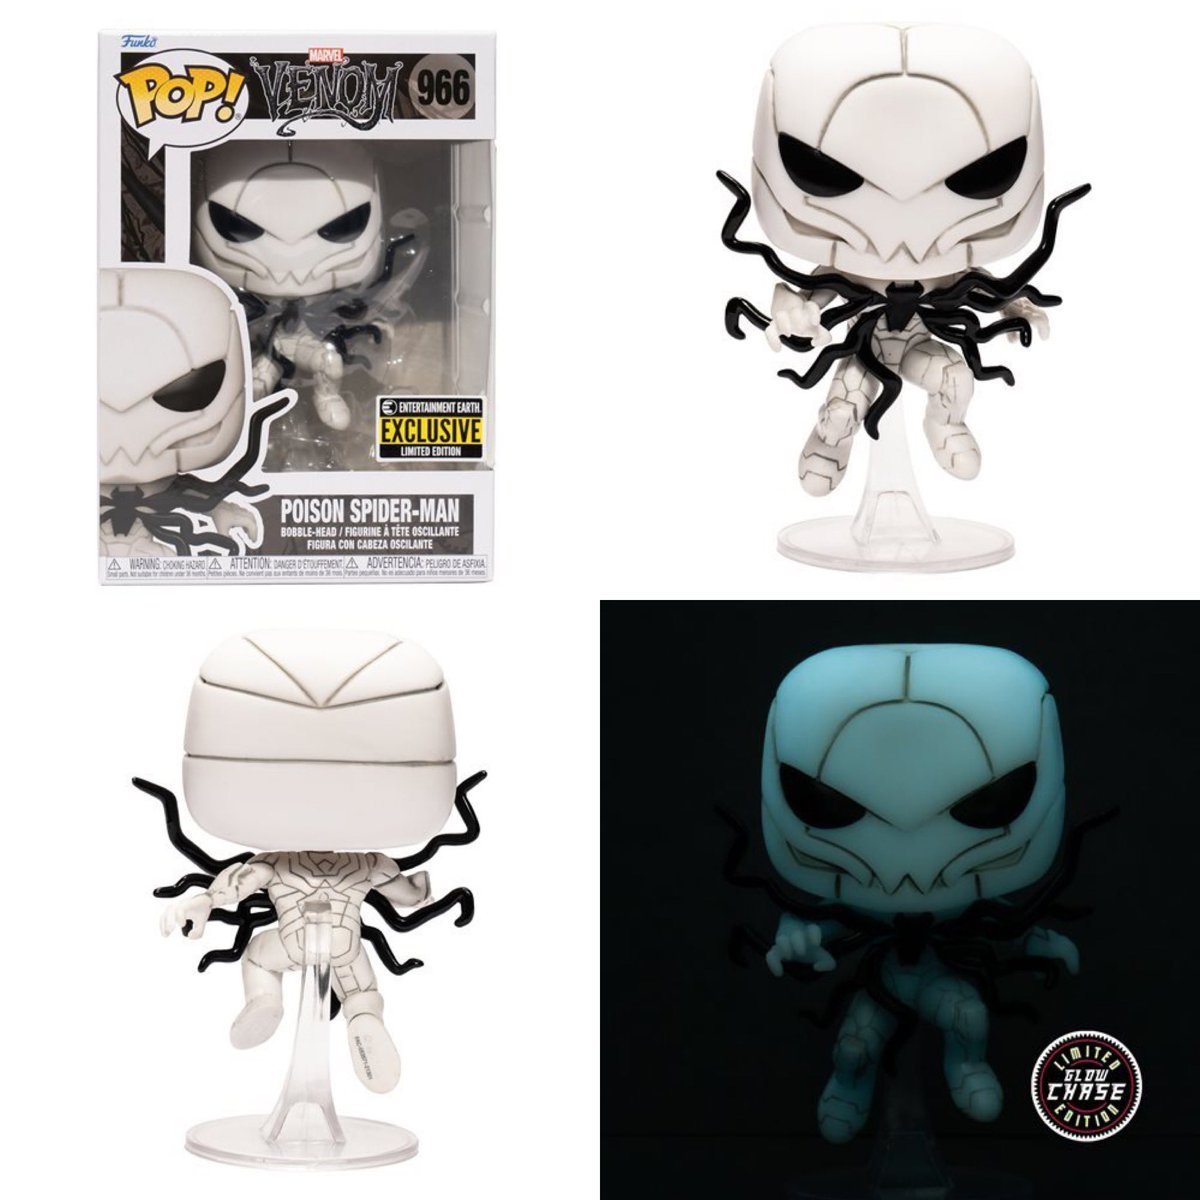 Some more shots of the awesome Poison Spider-Man Funko POP! Linky ~ fnkpp.com/EE #Ad #FPN #FunkoPOPNews #Funko #POP #POPVinyl #FunkoPOP #FunkoSoda #SpiderMan #Marvel